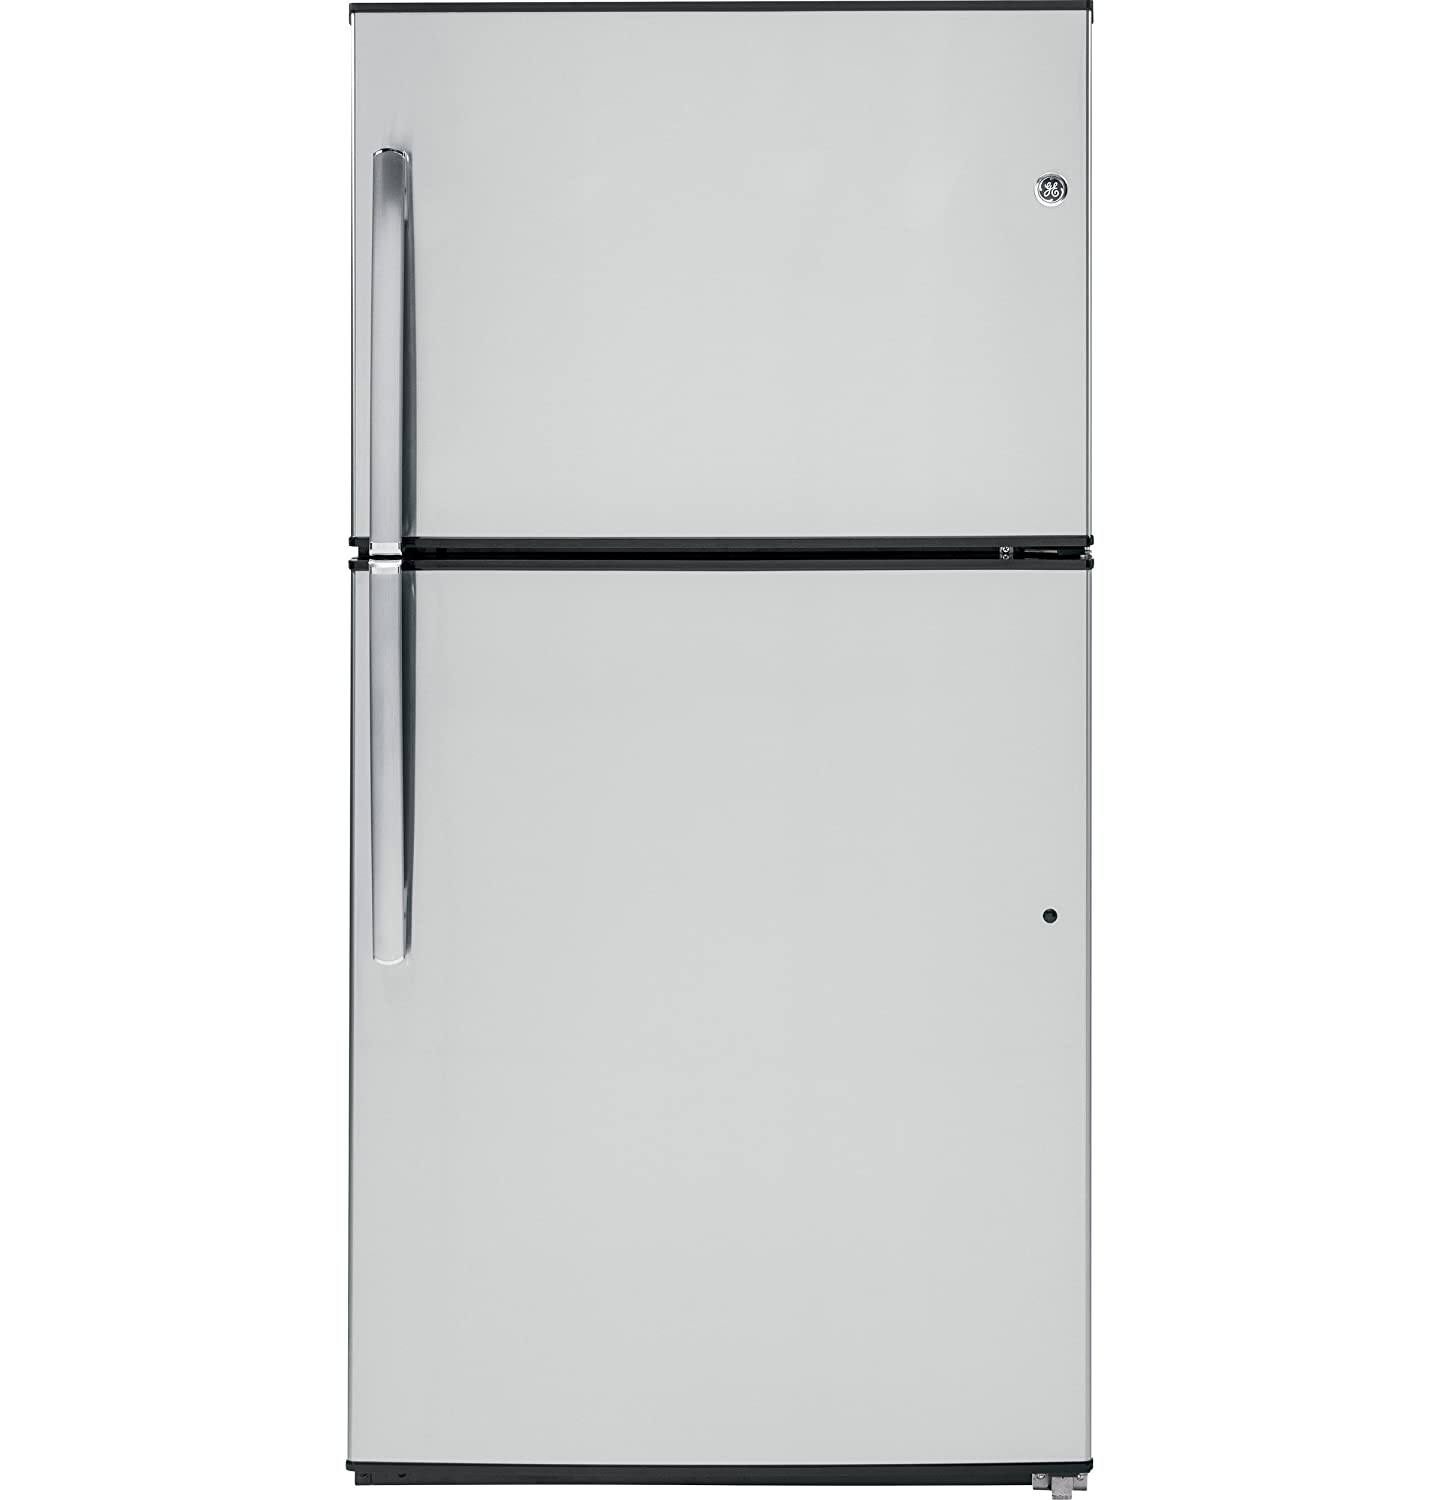 Amazon.com: GE GTE21GSHSS 21.2 Cu. Ft. Stainless Steel Top Freezer  Refrigerator   Energy Star: Appliances